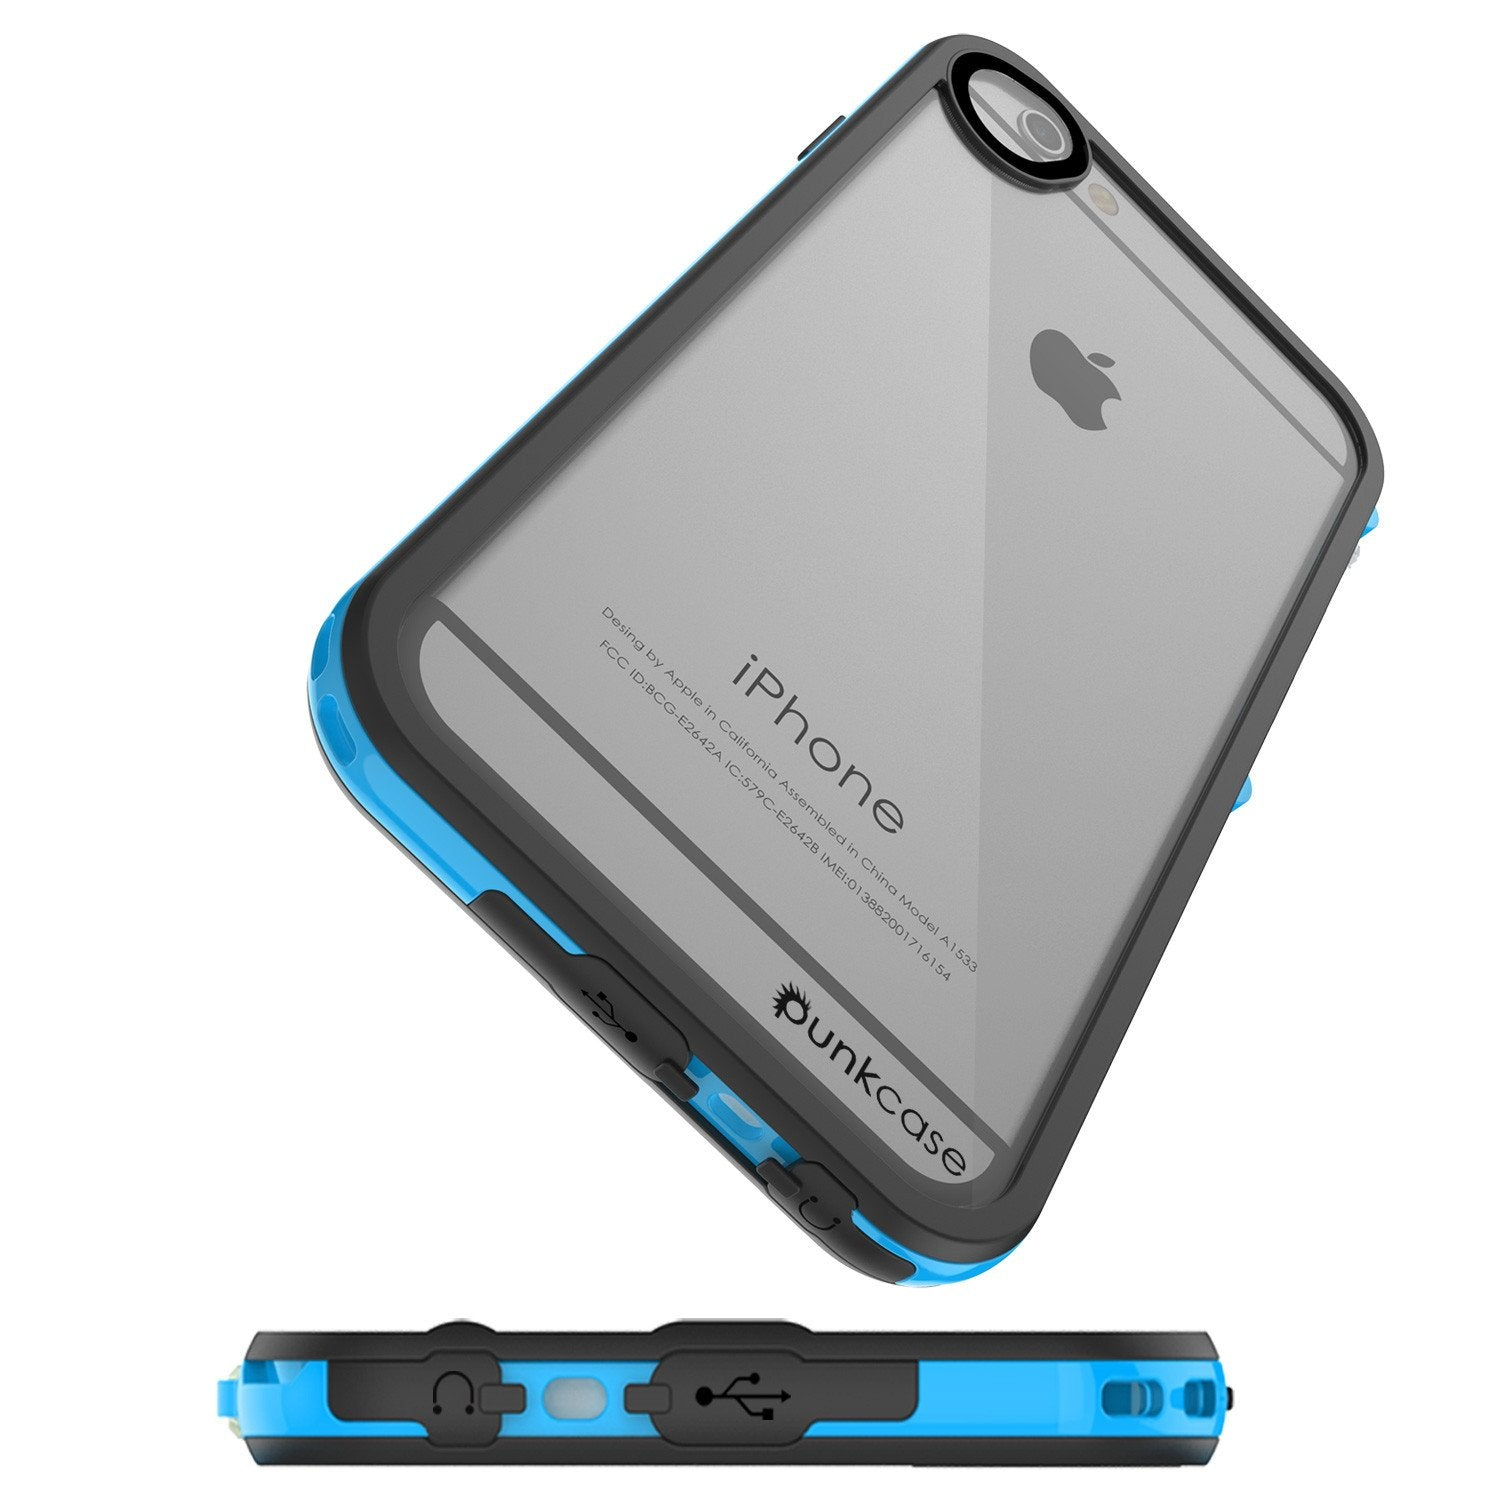 Apple iPhone 7 Waterproof Case, PUNKcase CRYSTAL 2.0 Light Blue  W/ Attached Screen Protector  | Warranty - PunkCase NZ